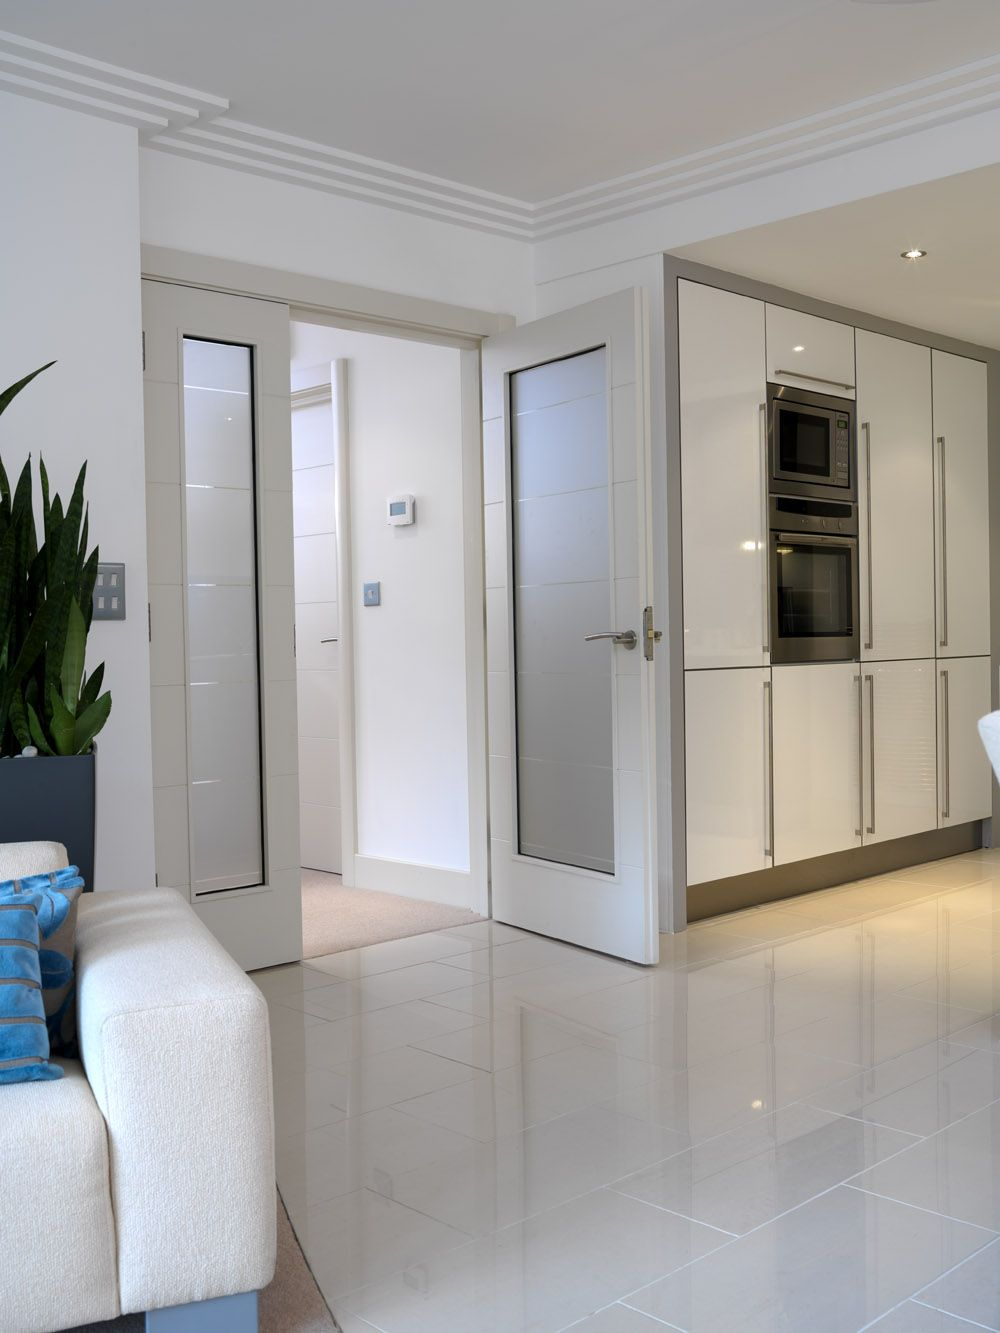 Gorgeous white glazed internal door pair whitedoors jb - Contemporary glass doors interior ...